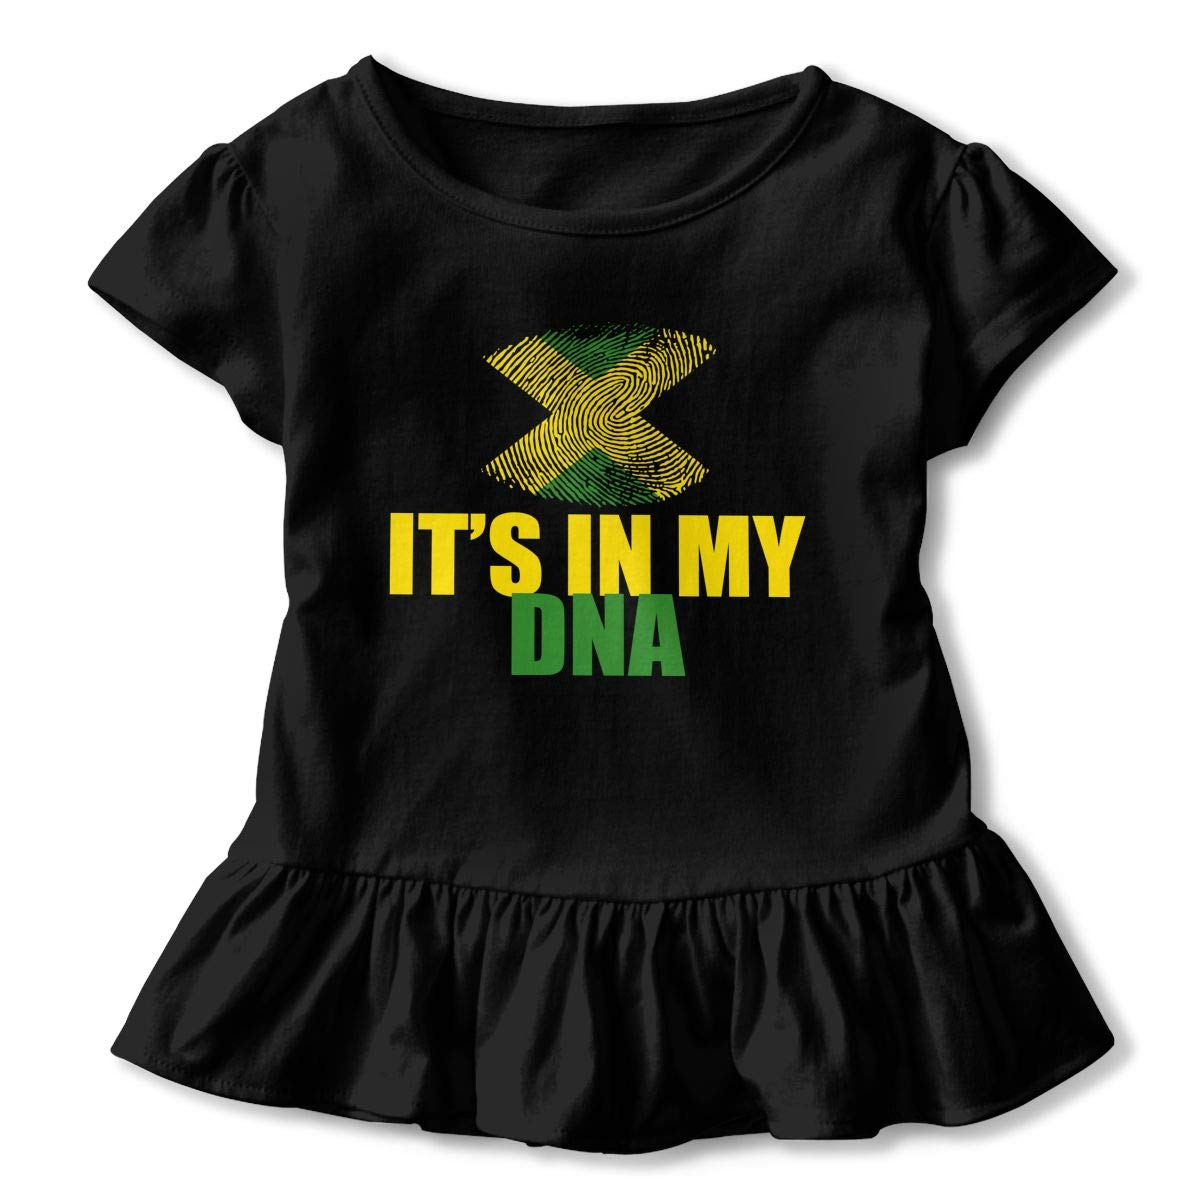 Jamaican Its in My DNA Toddler Baby Girls Short Sleeve Ruffle T-Shirt